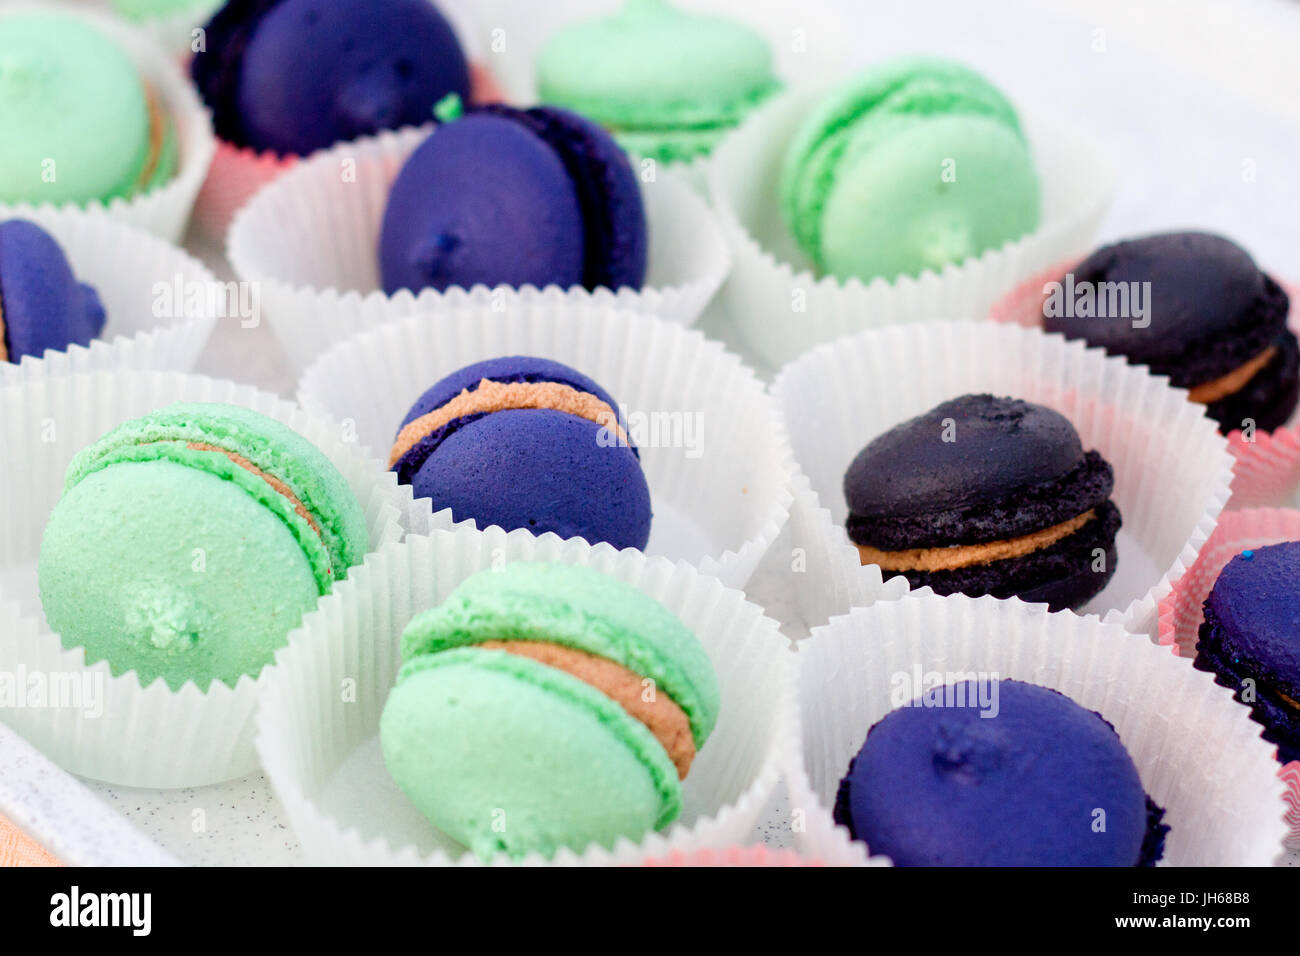 Colourful macarons - Stock Image